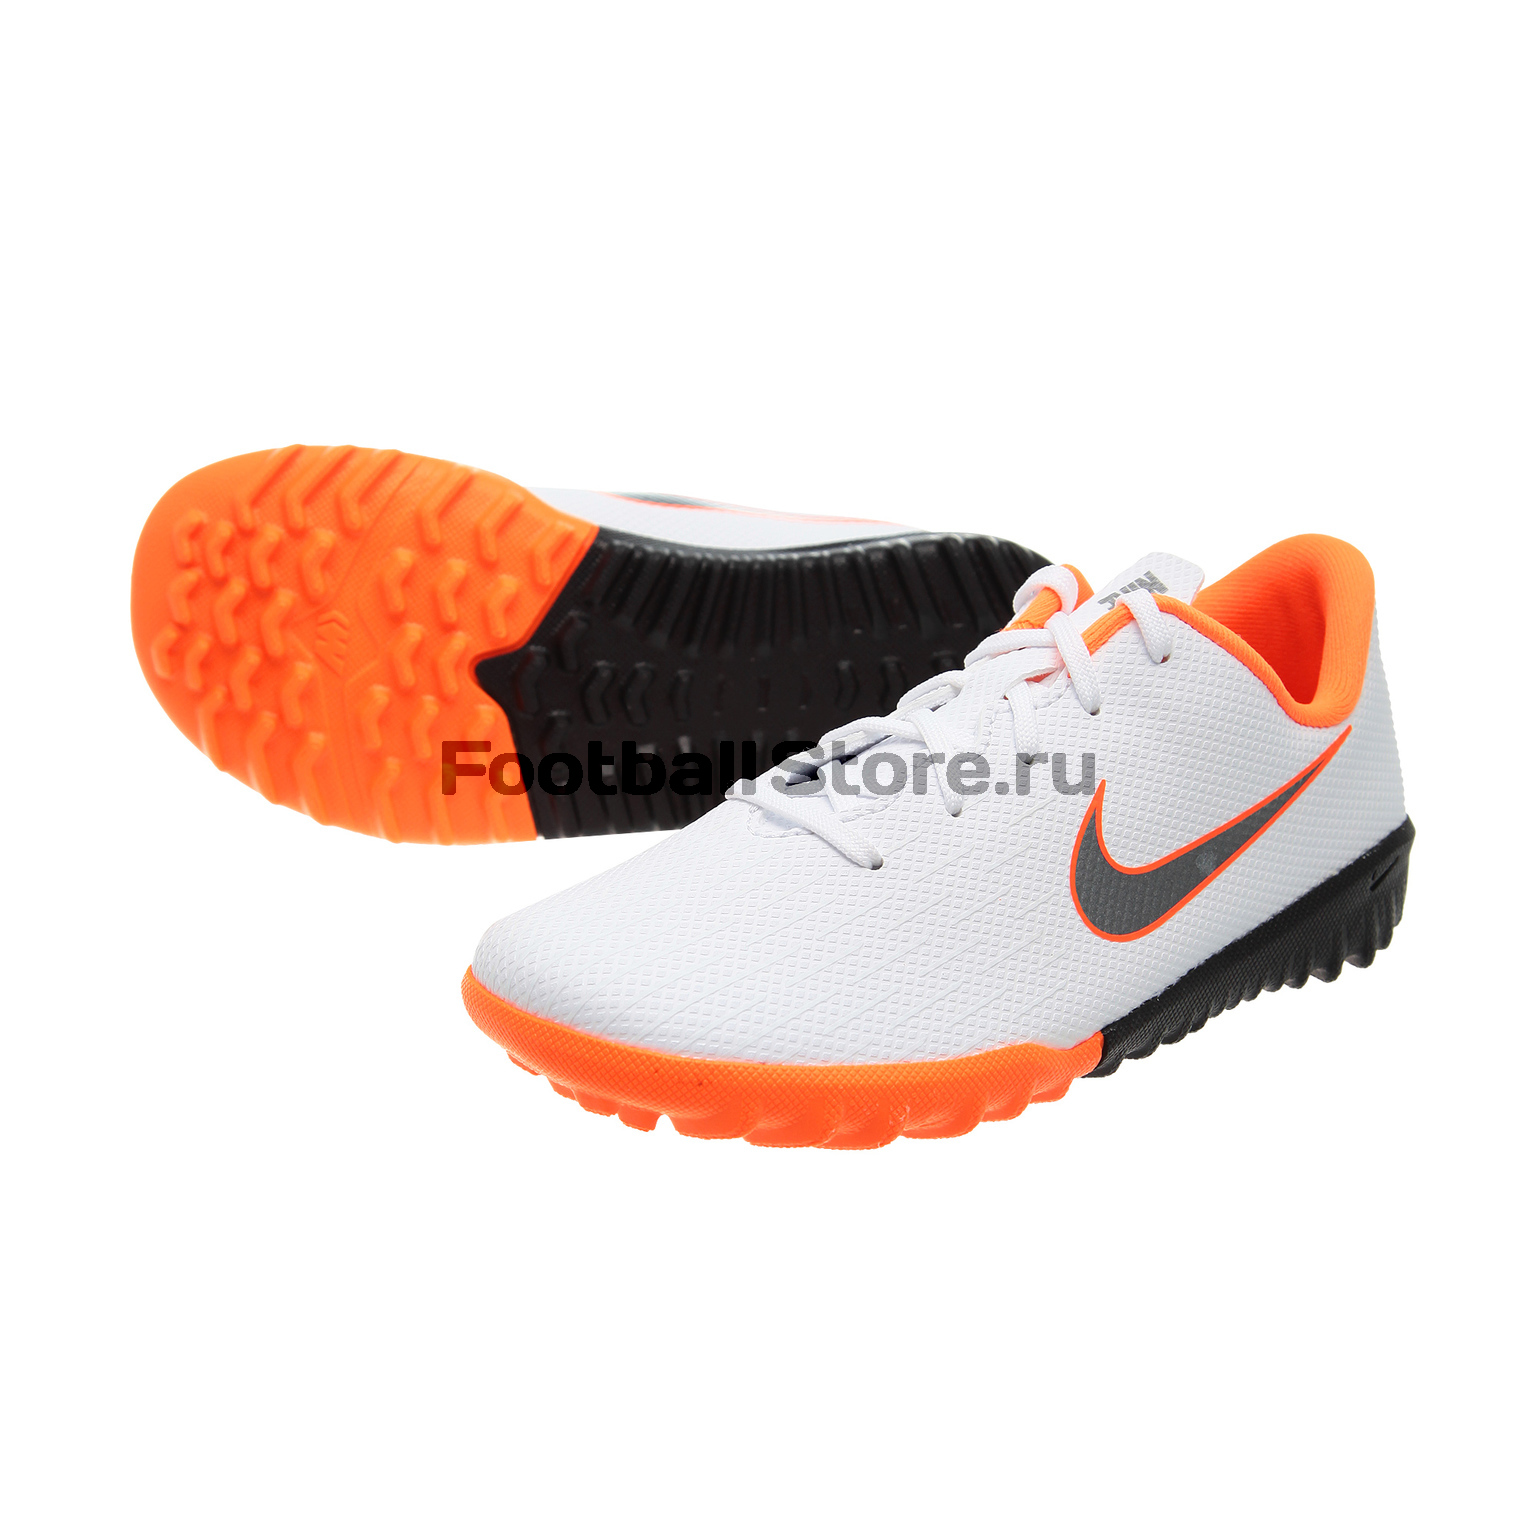 Шиповки Nike JR VaporX 12 Academy PS TF AH7353-107 шиповки nike lunar legendx 7 pro tf ah7249 080